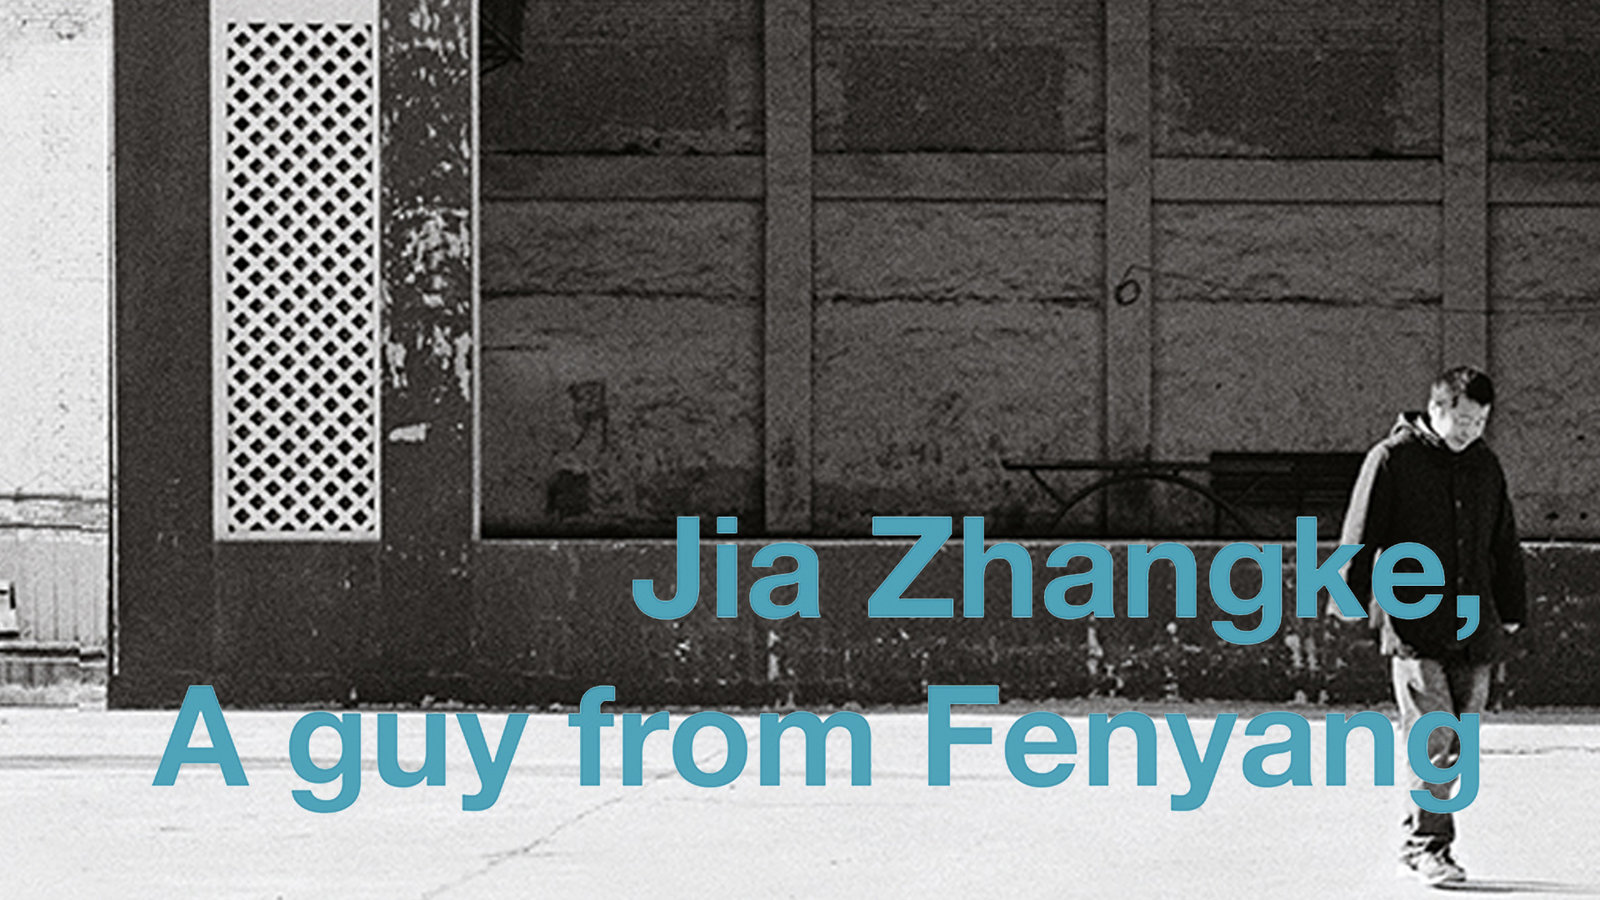 Jia Zhangke, A Guy from Fenyang - A Chinese Filmmaker Visits his Hometown